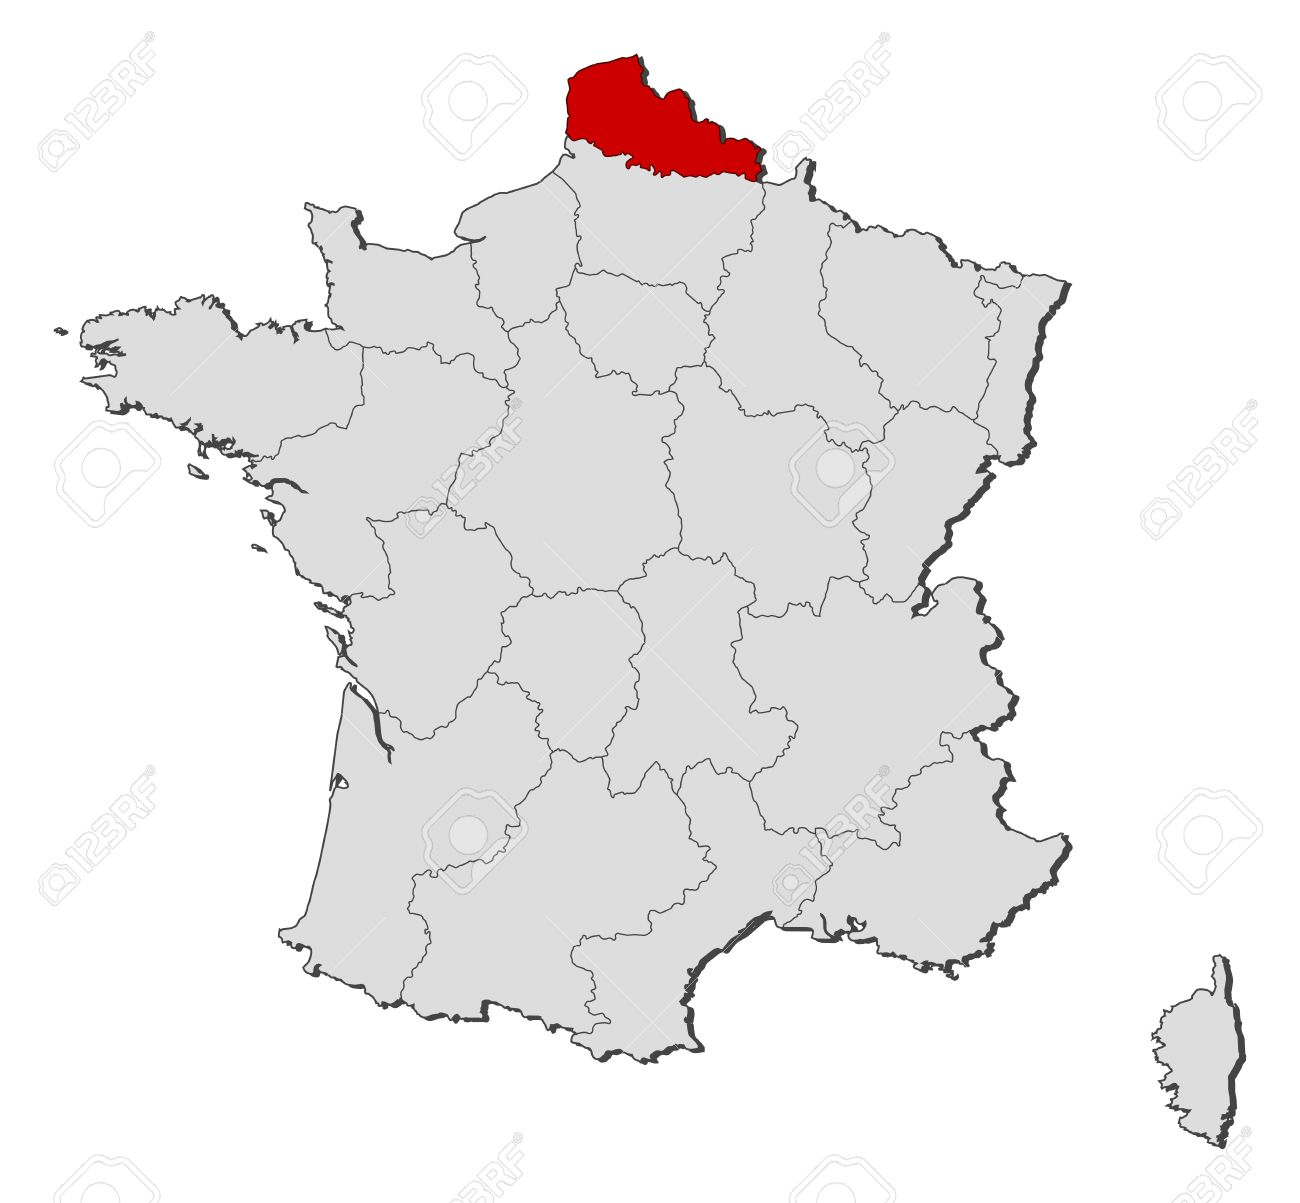 Political Map Of France With The Several Regions Where Nord.